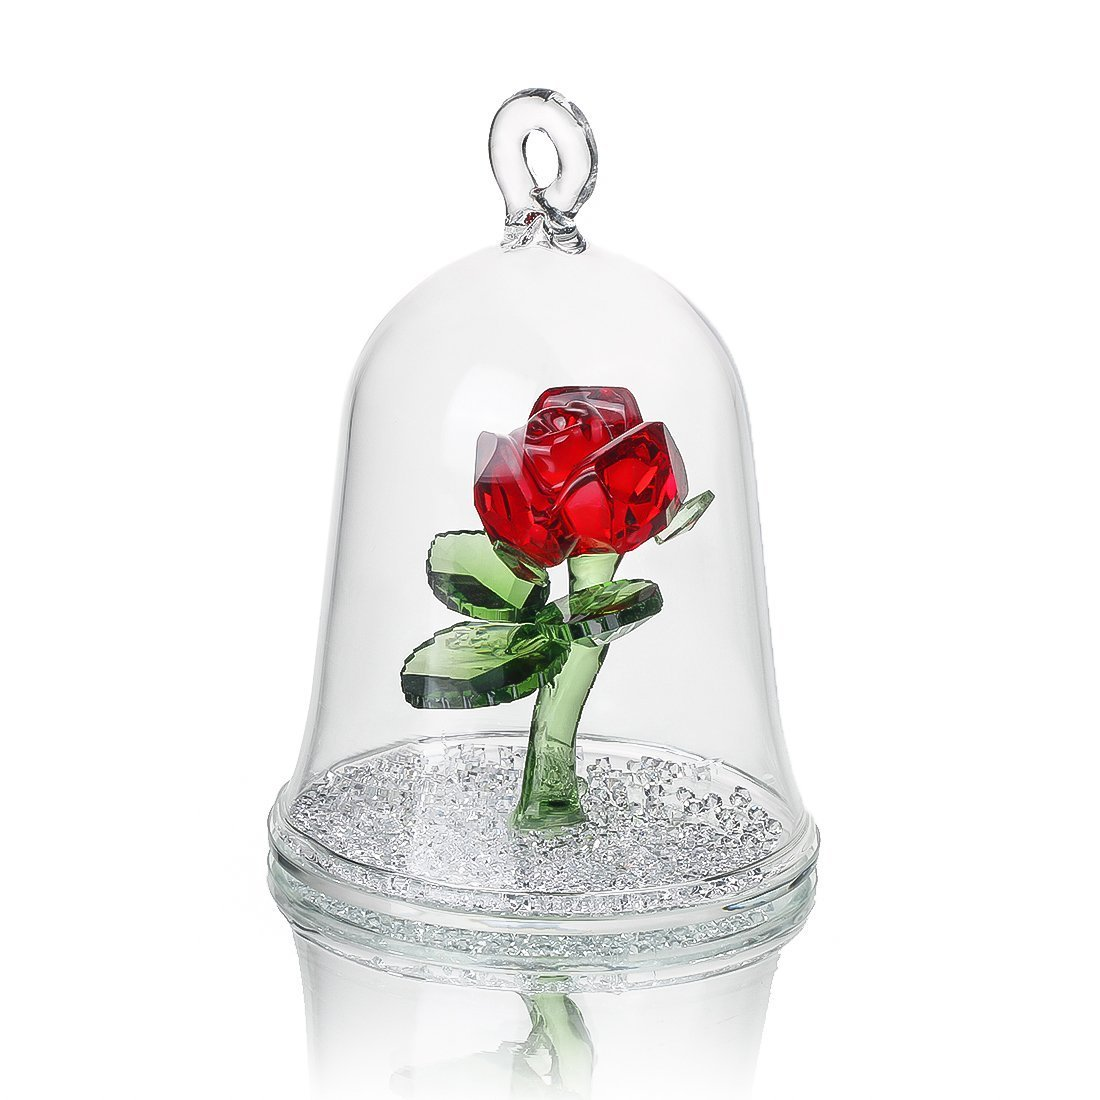 H&D Crystal Enchanted Rose Flower Figurine Dreams Ornament in a Glass Dome Gifts for her (Royal Blue)